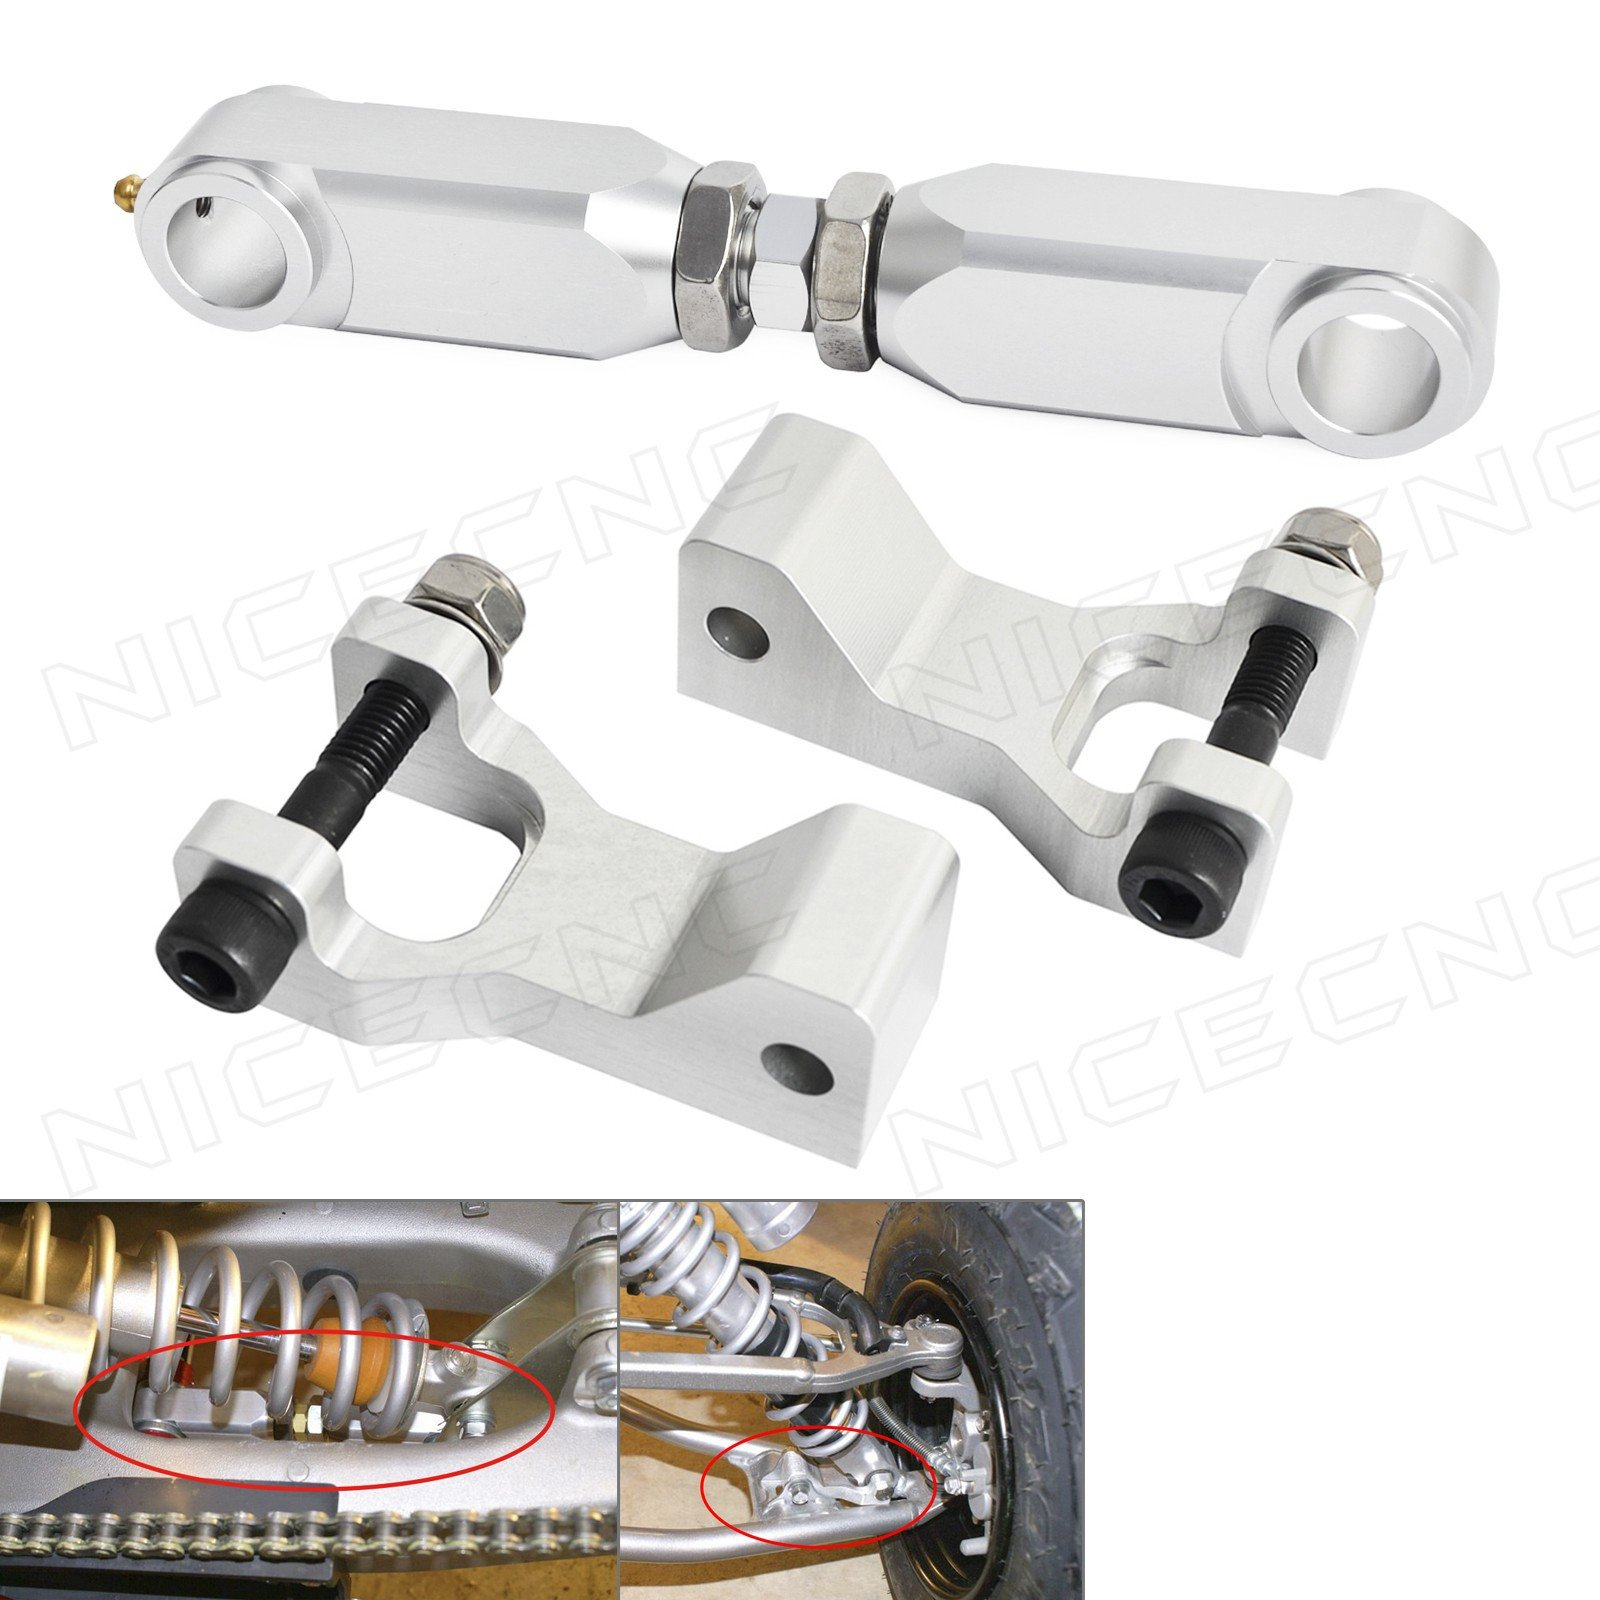 "NICECNC Silver ATV 3.5"" Front & Rear Lowering Kit for Raptor 350 YFM350 2004-2013 660 660R YFM660R 2001 2002 2003 2004 2005 700 700R YFM700 2006-2017 Y-ama-ha"